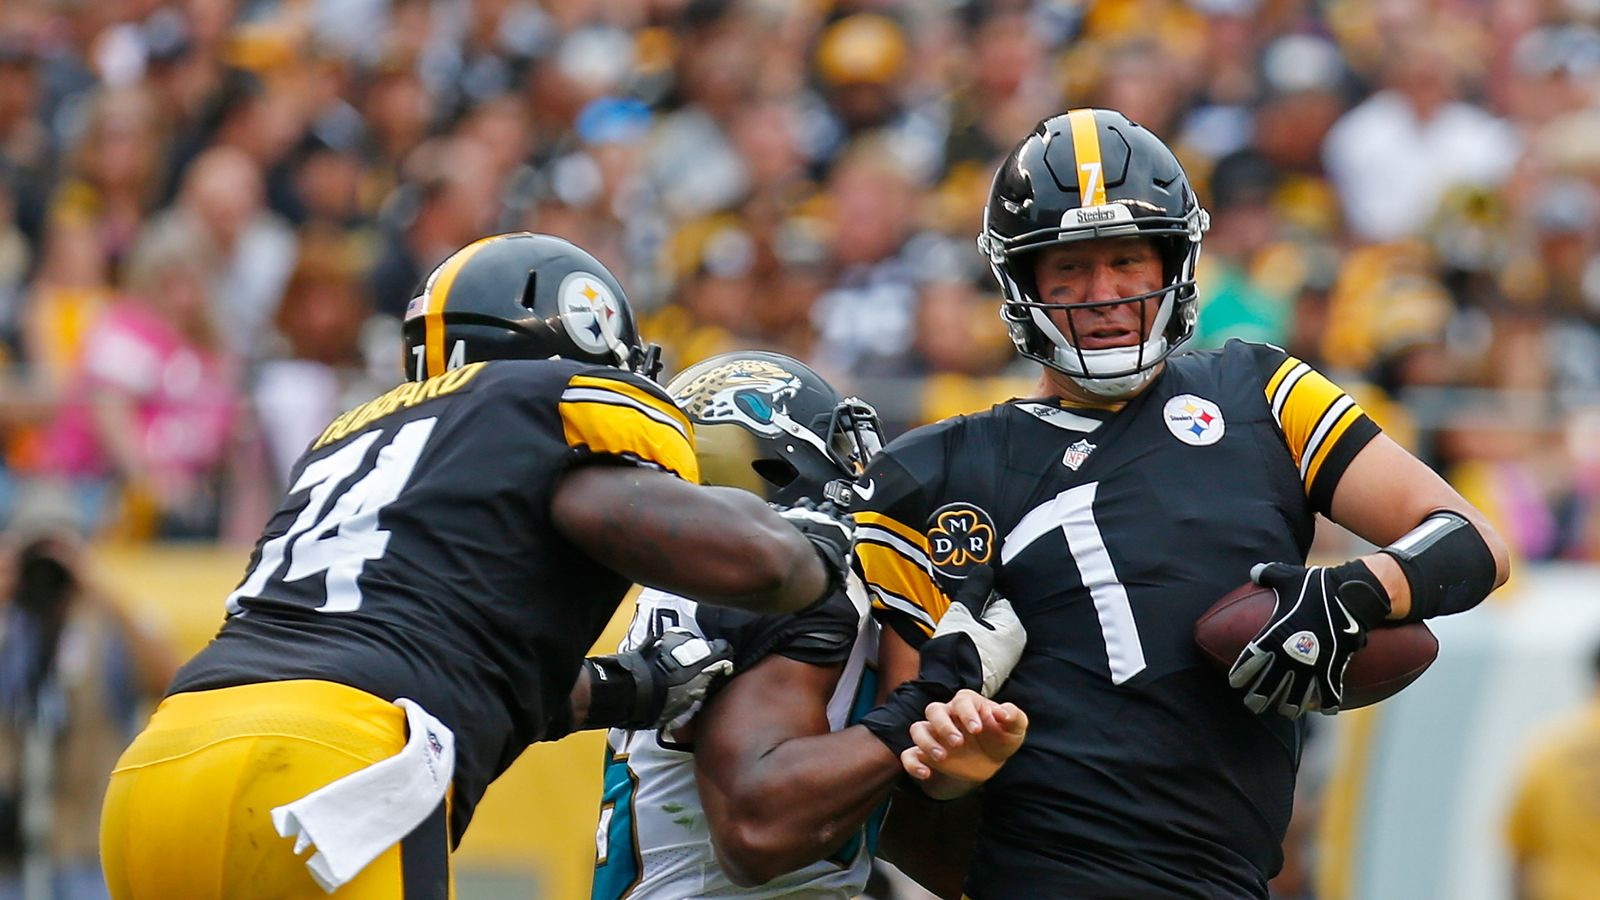 Roethlisberger accused of sexual assault, again